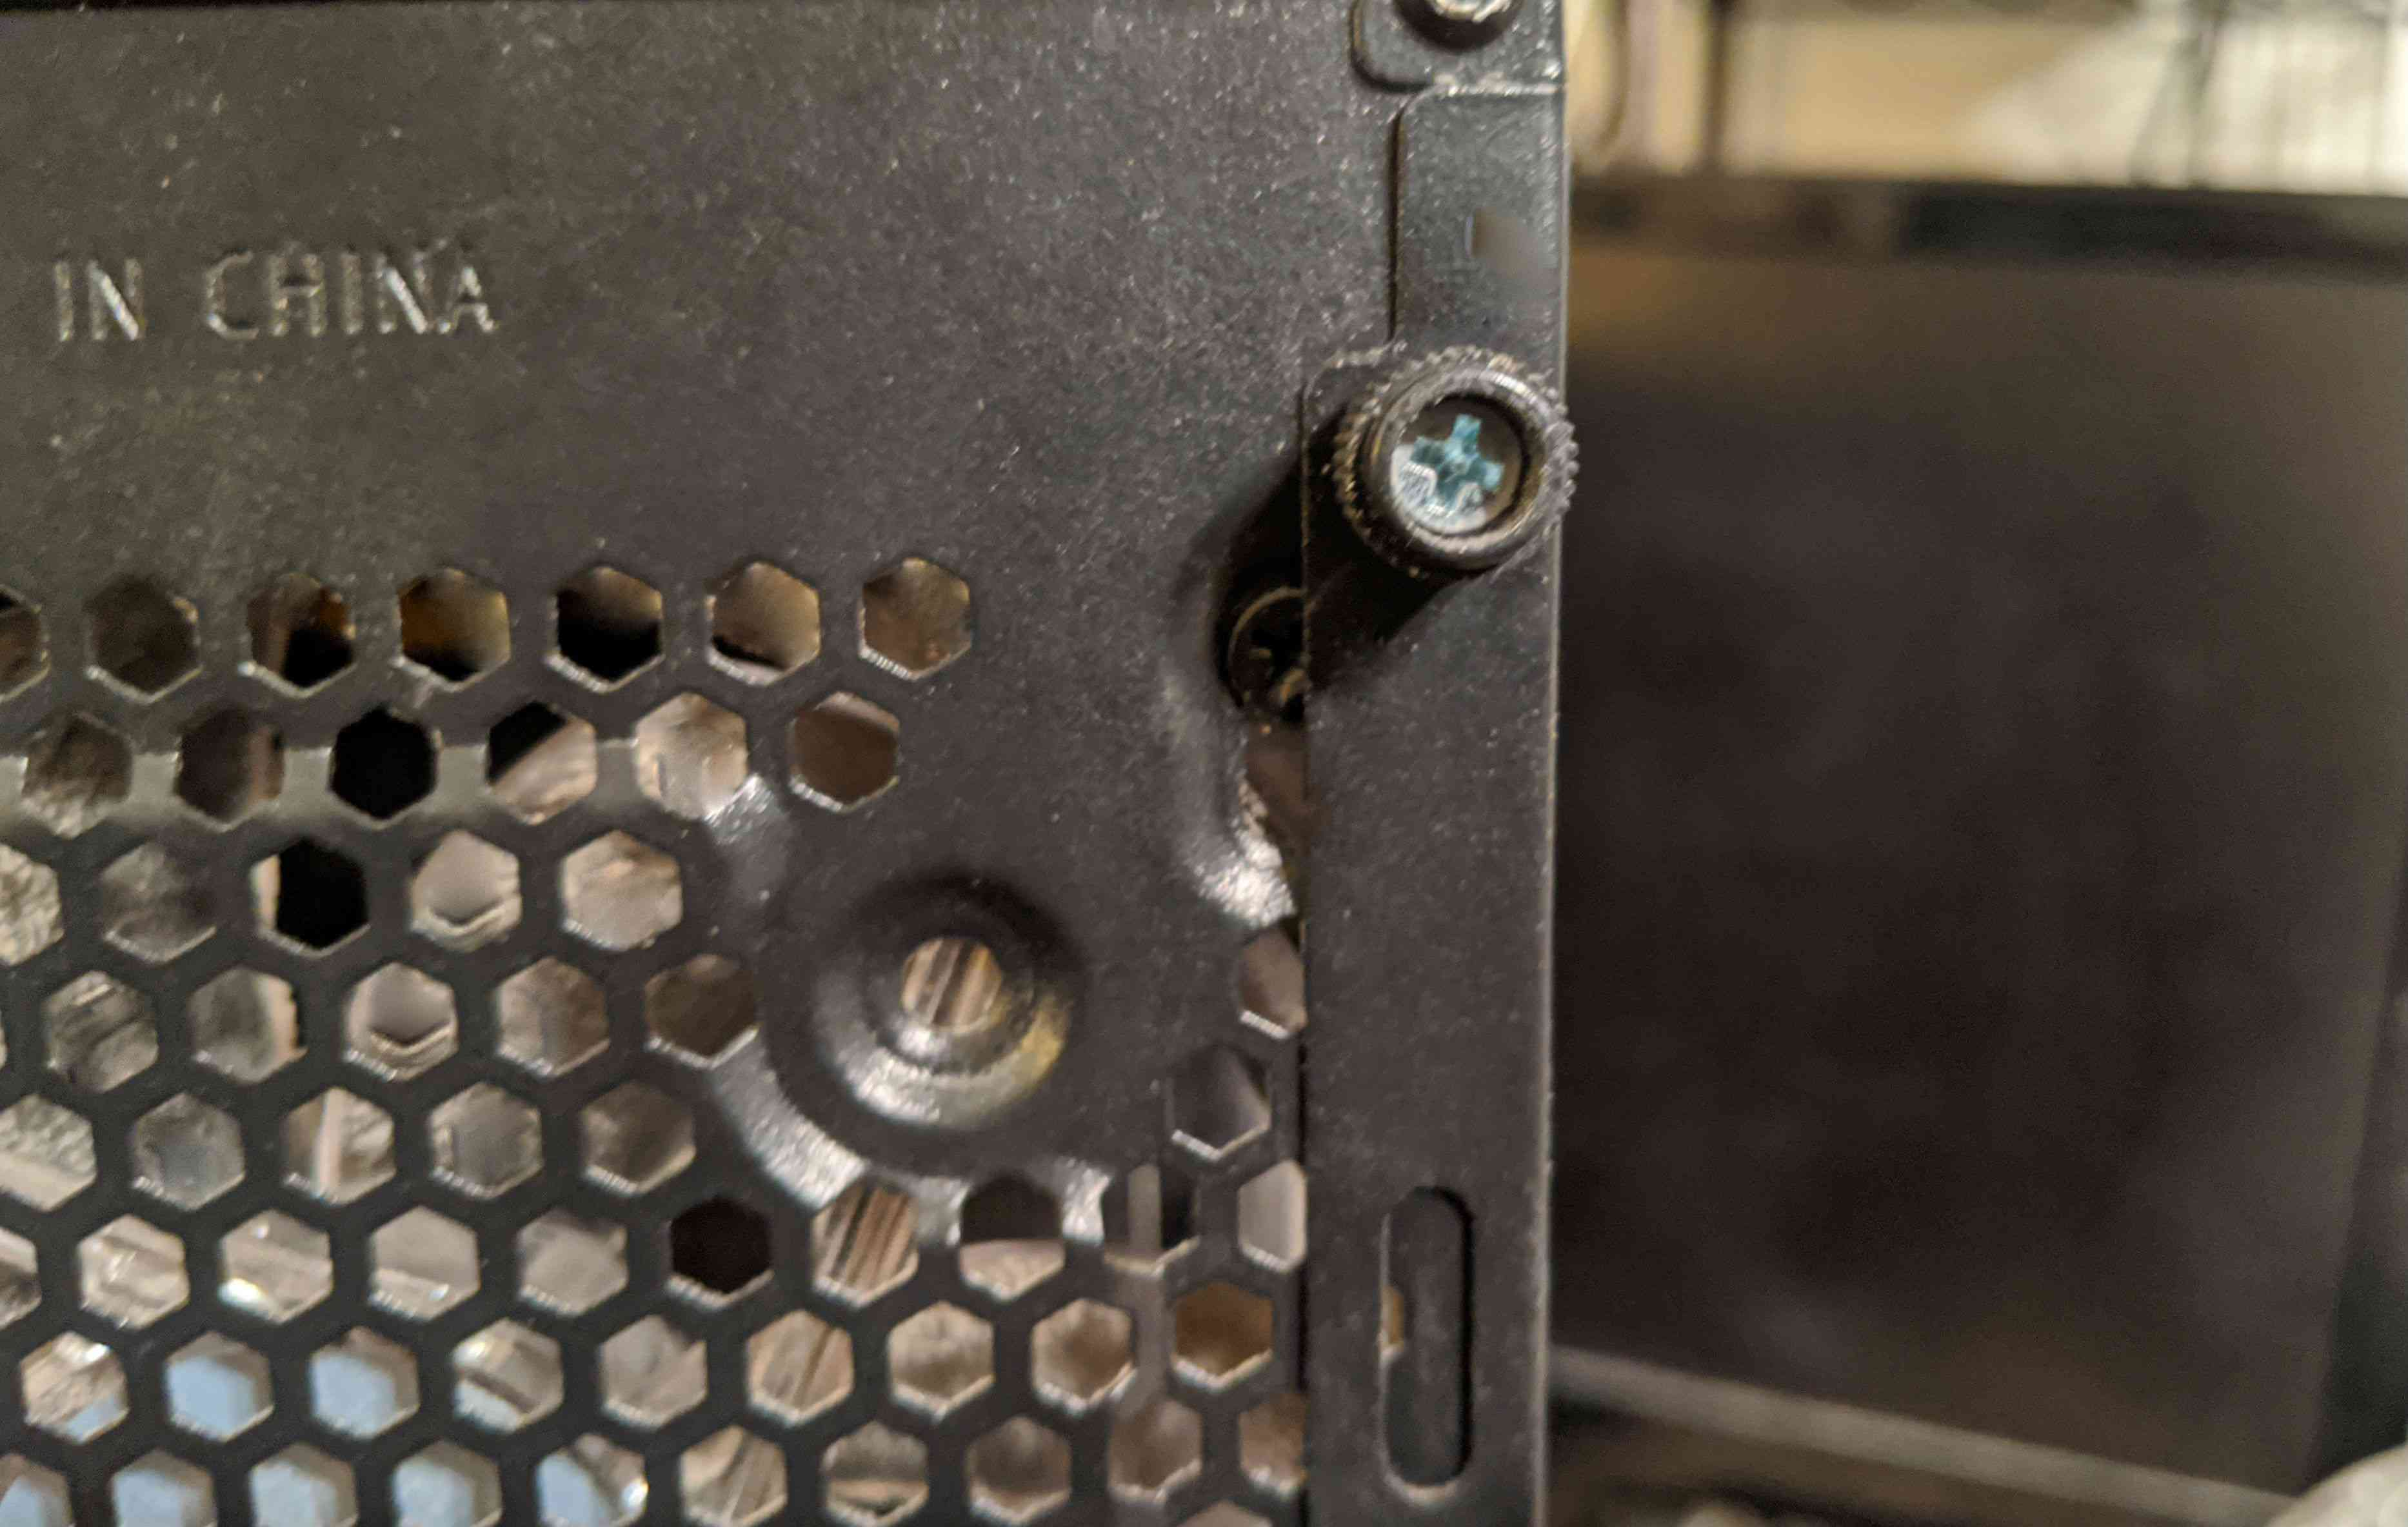 A thumbscrew on a computer case.